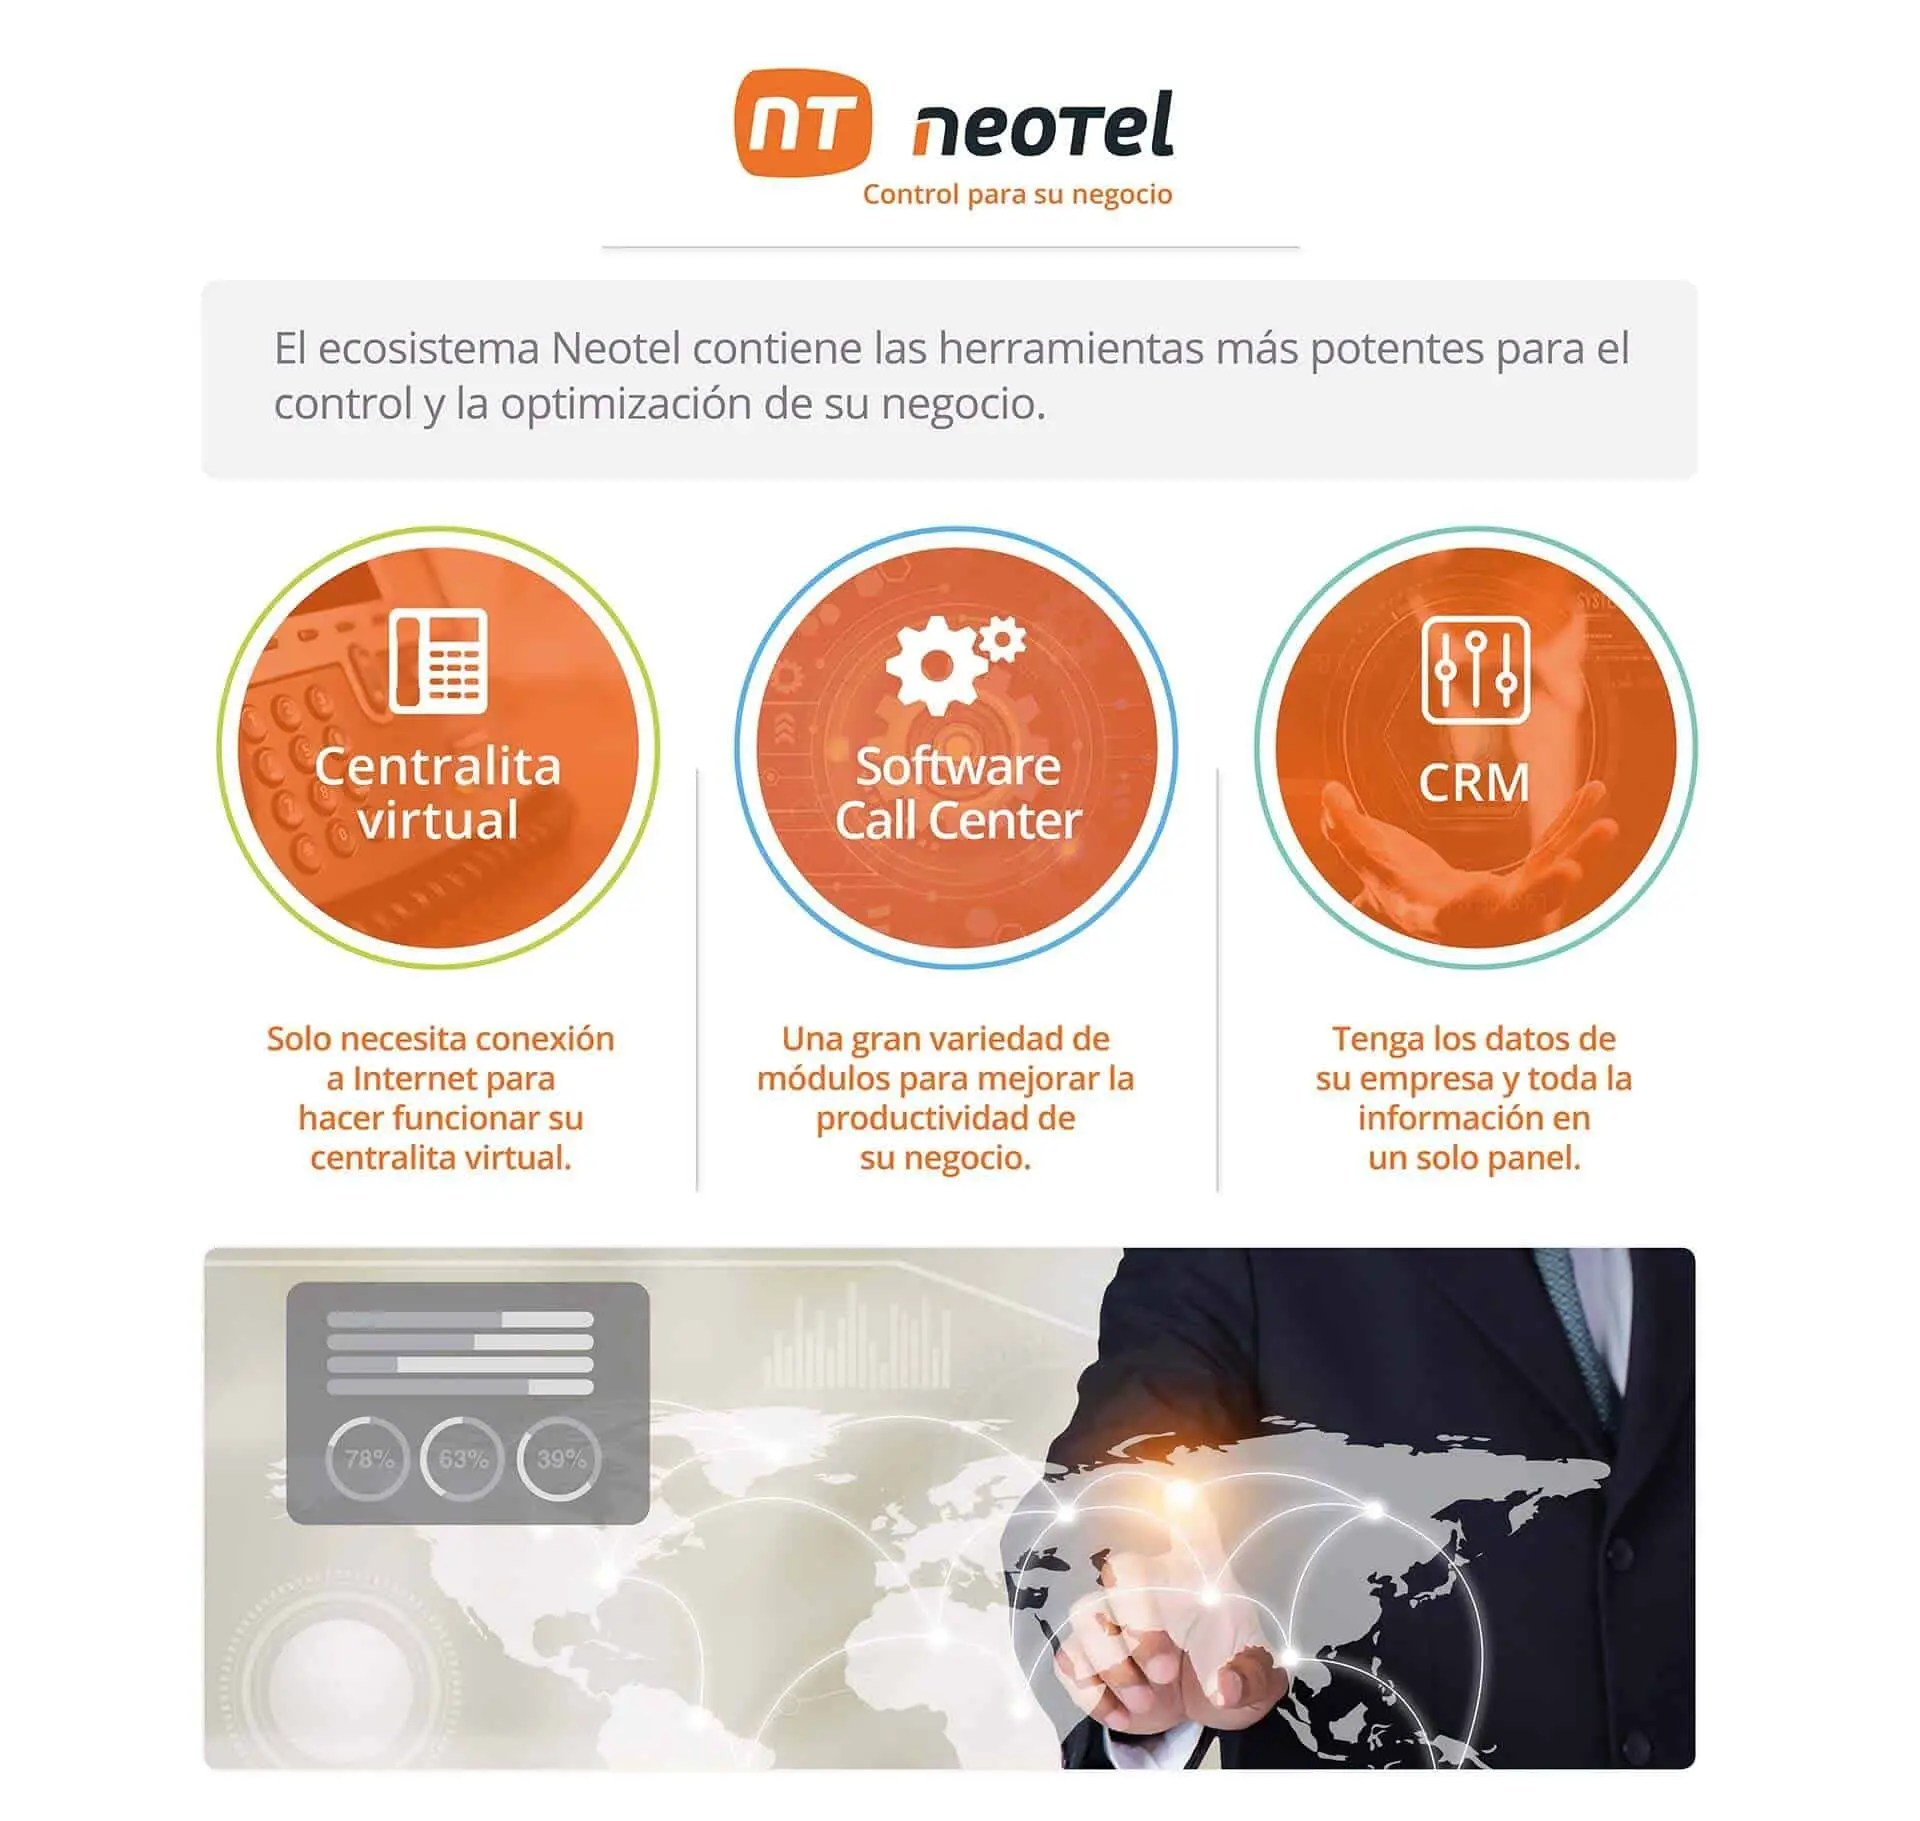 software call center centralita virtual Neotel